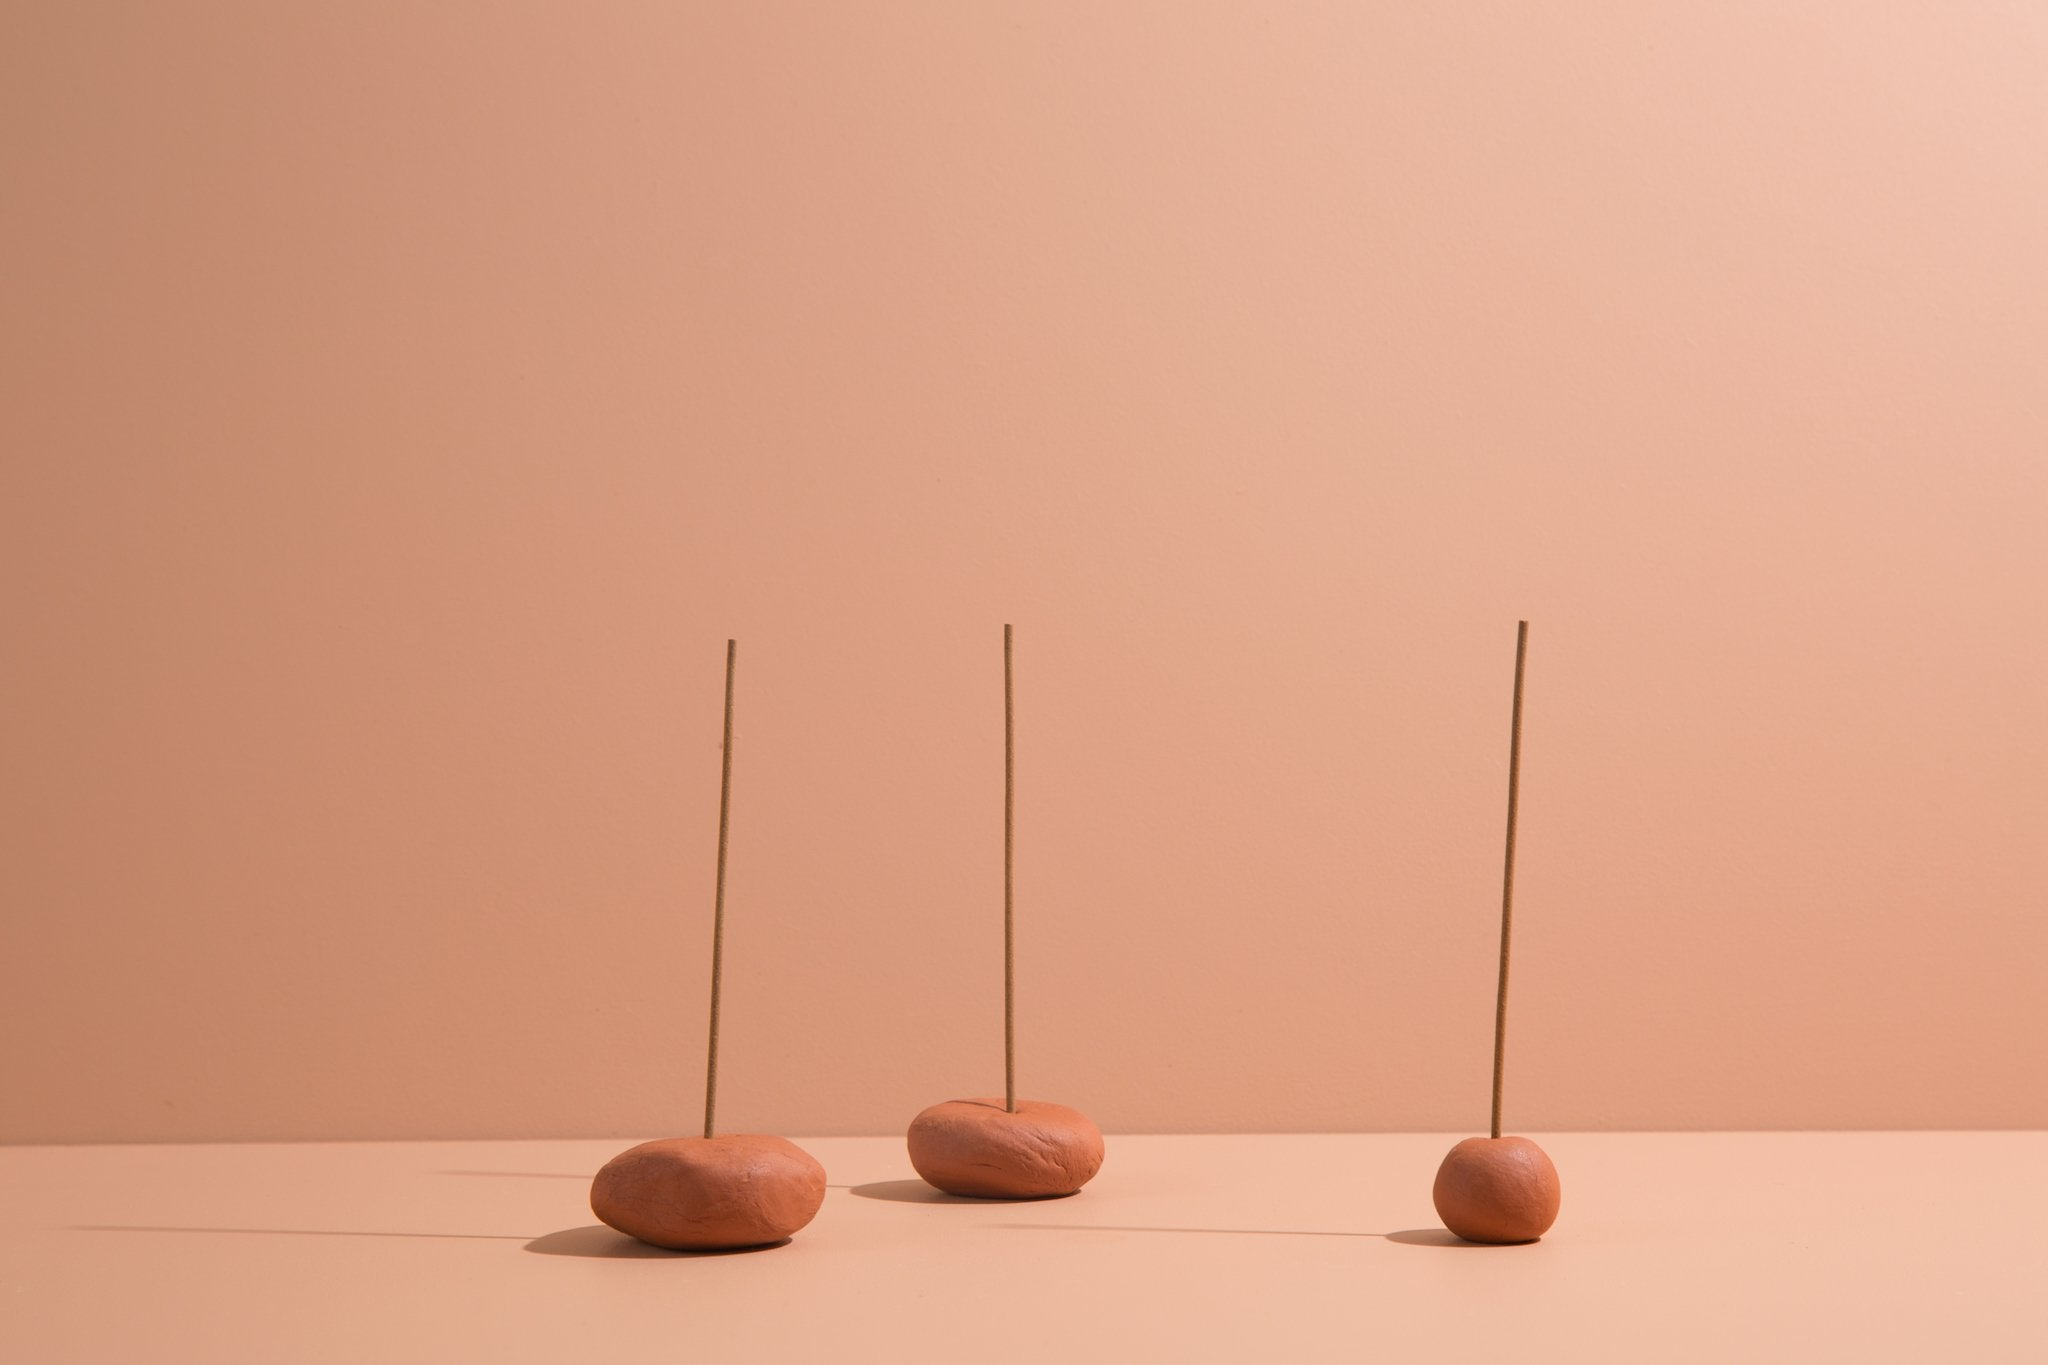 This is Incense - Incense